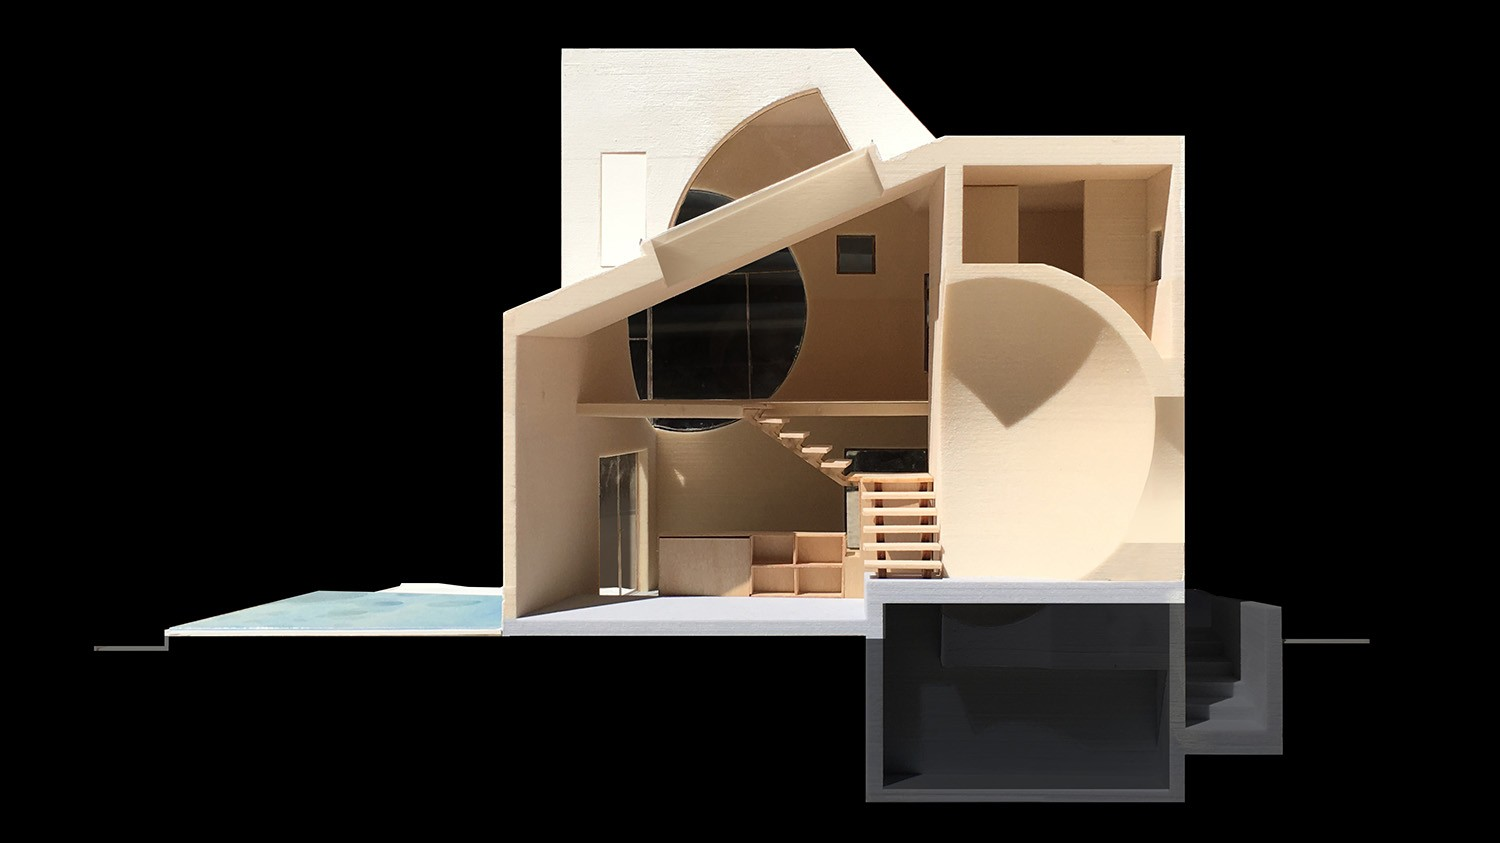 https://s3.us-east-2.amazonaws.com/steven-holl/uploads/projects/project-images/StevenHollArchitects_EOI_RESIDENCE SECTION_EDIT_3_WH.jpg